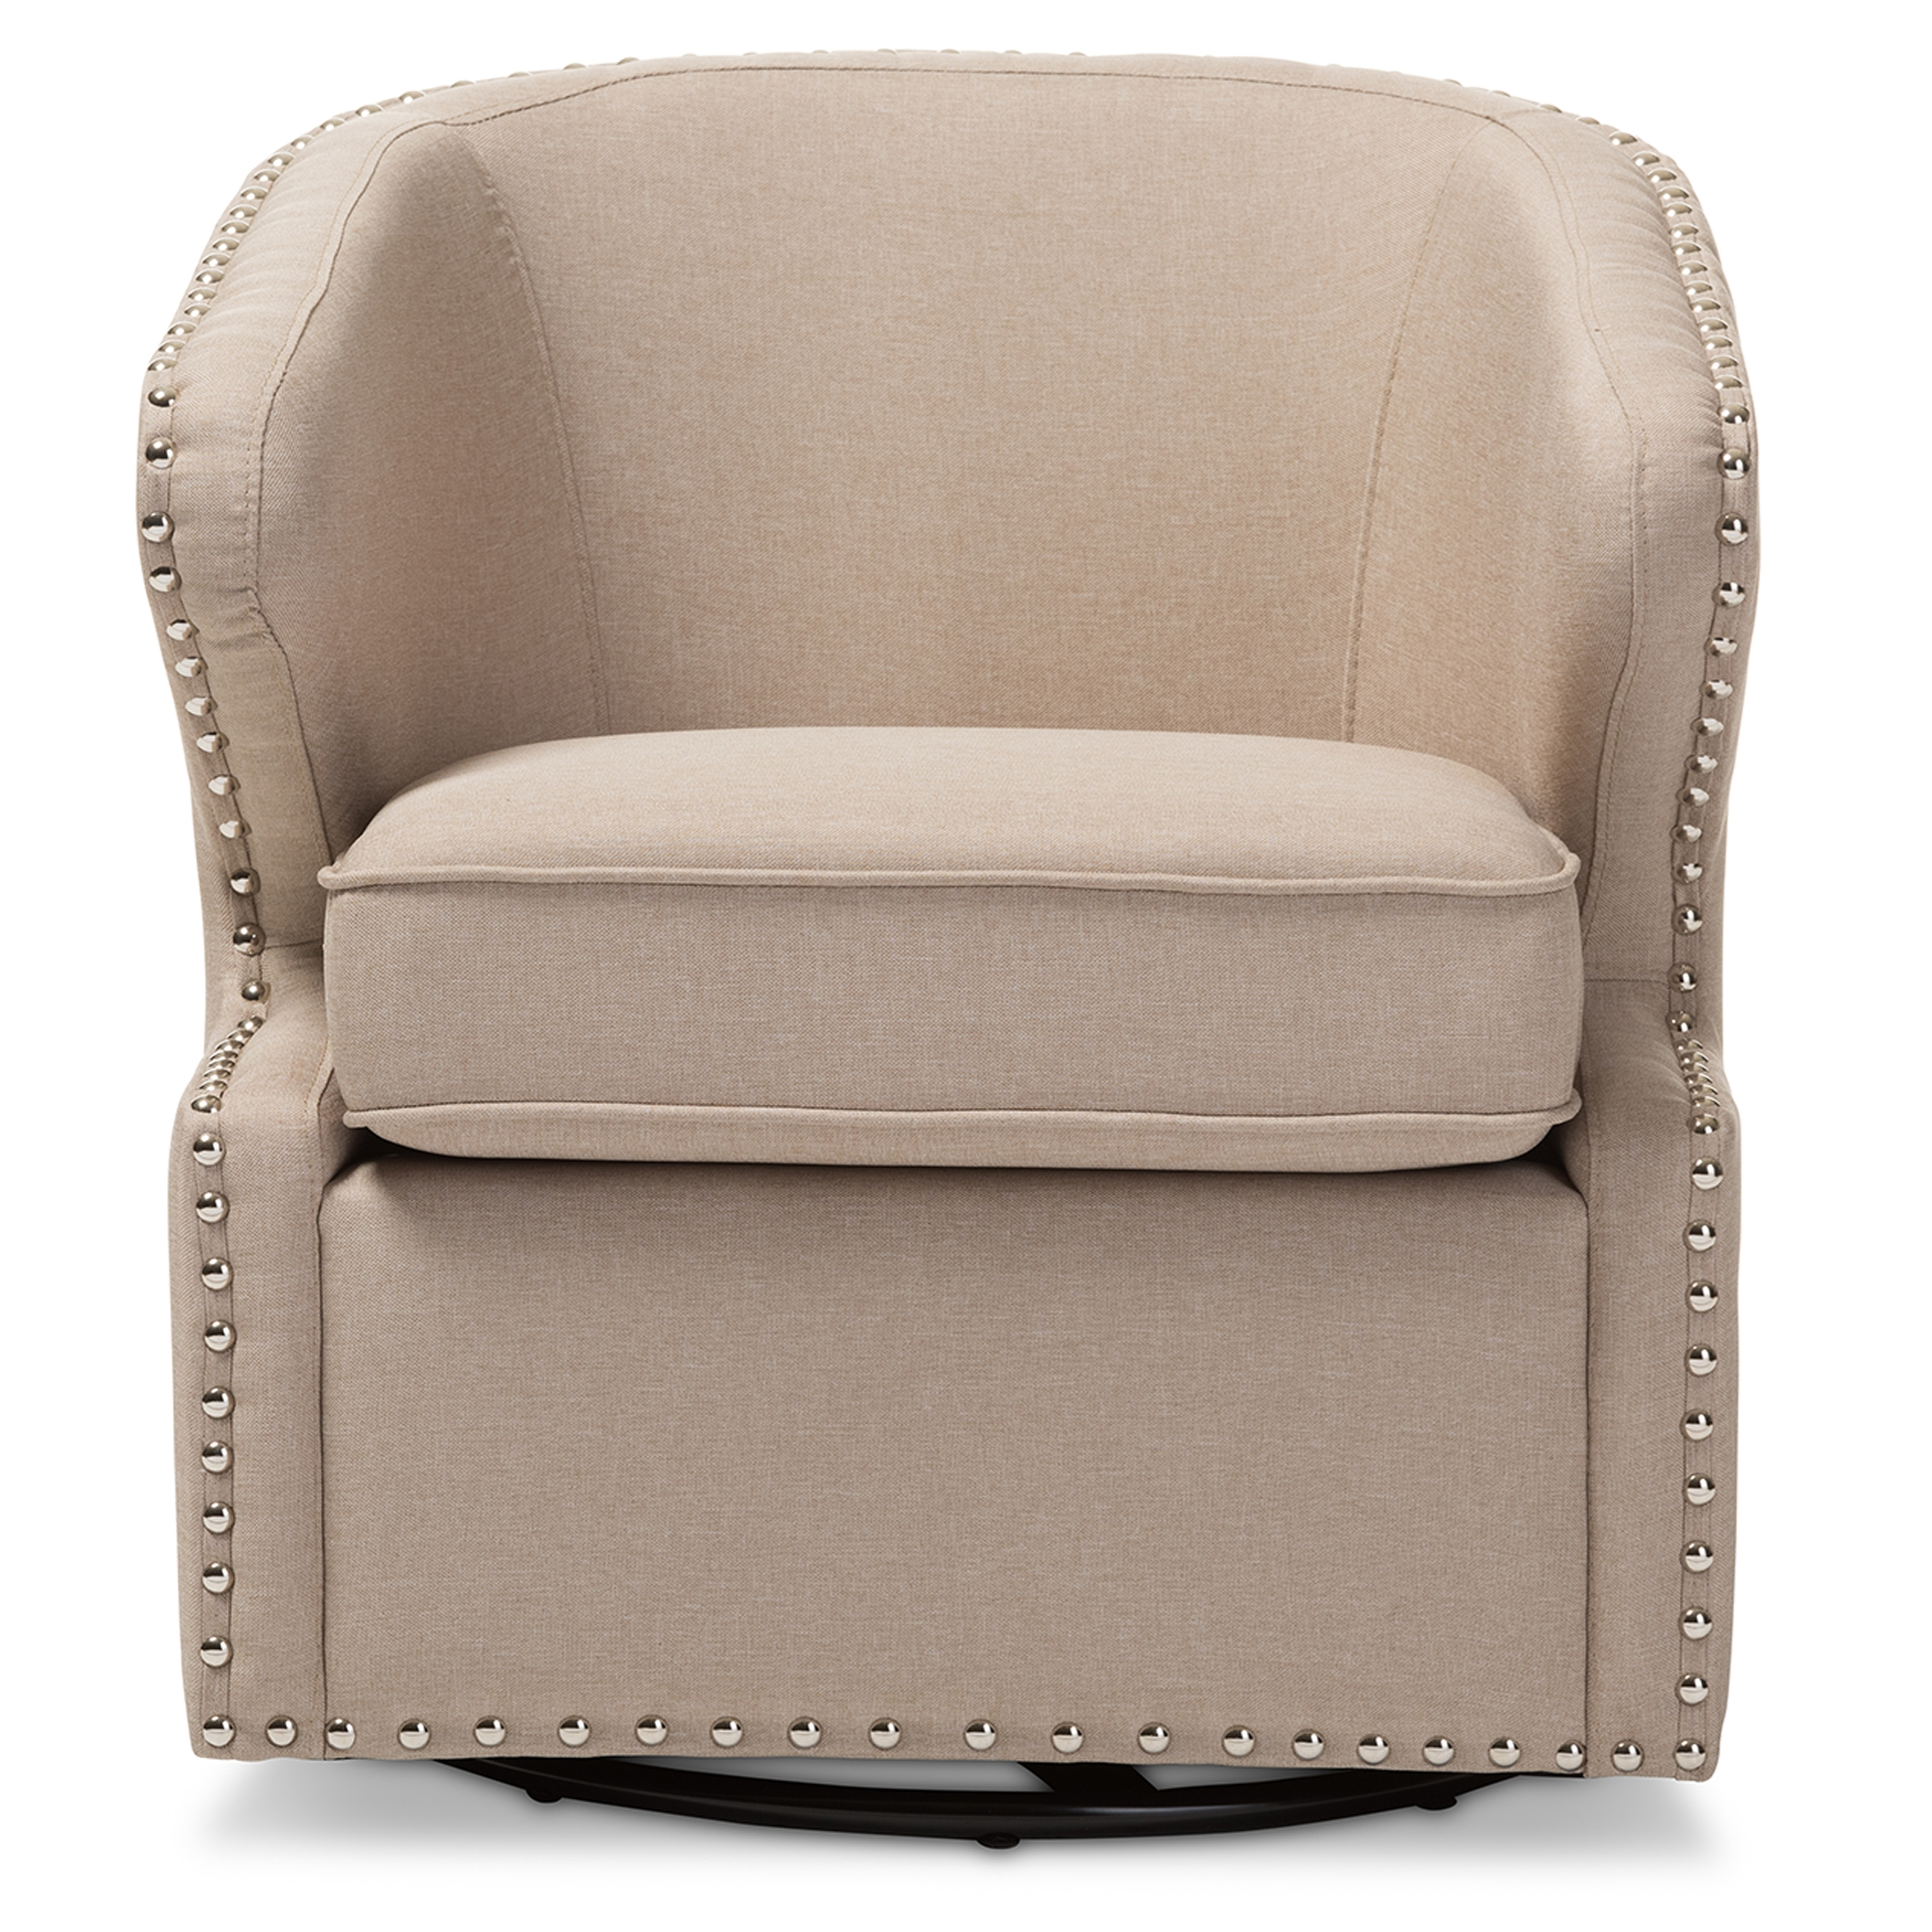 Baxton Studio Finley Mid Century Modern Beige Fabric Upholstered Swivel  Armchair